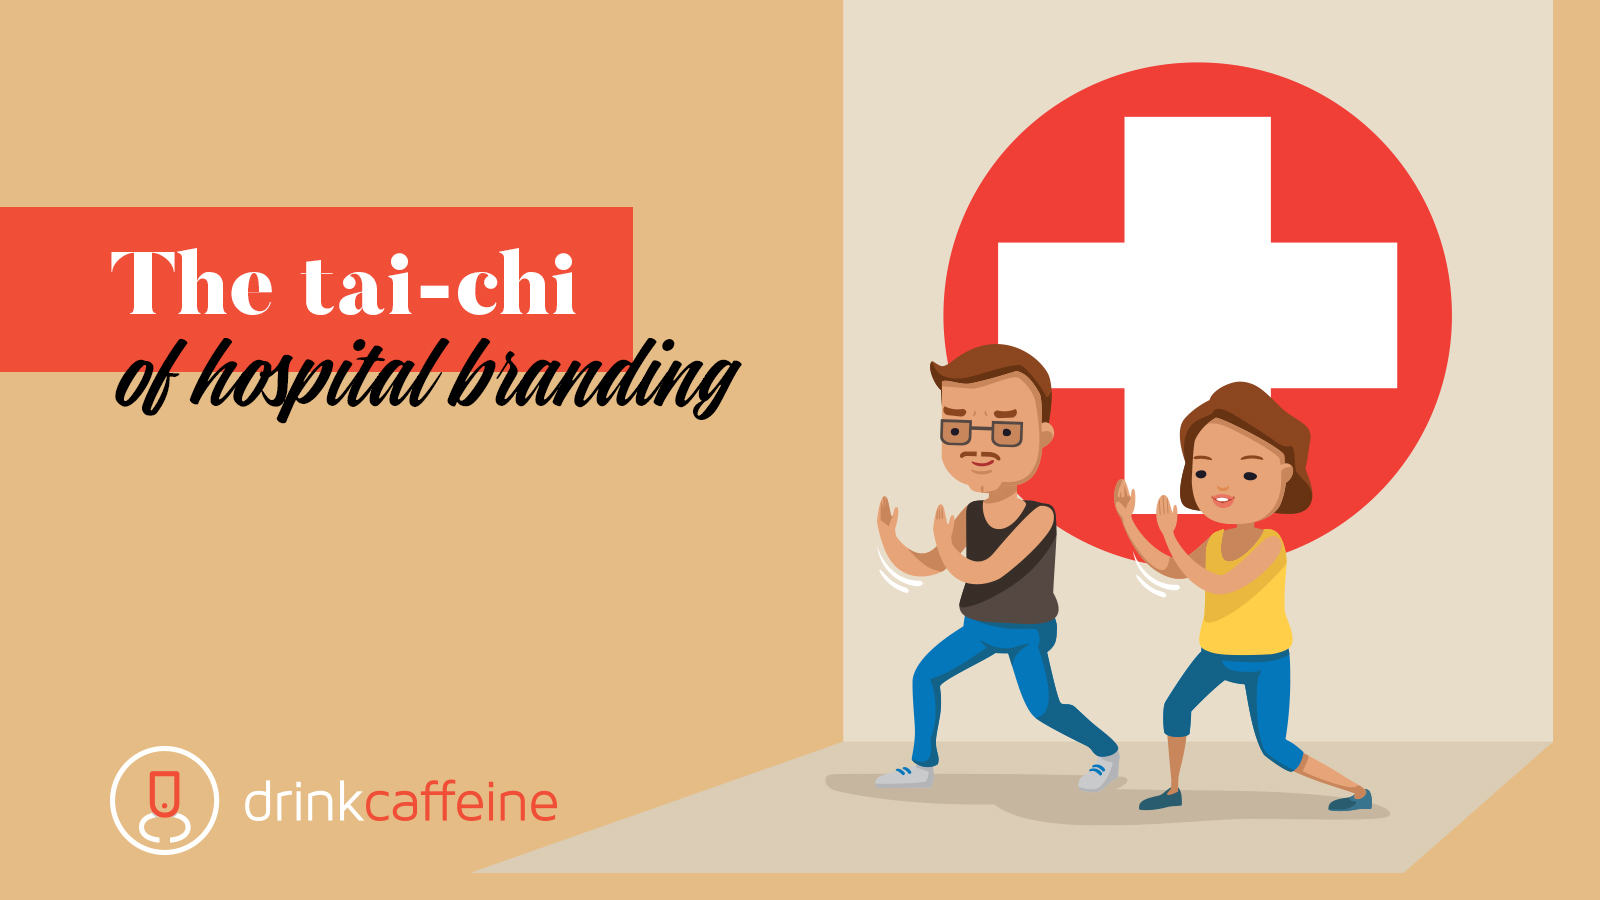 The Tai-Chi of Hospital Branding blog image